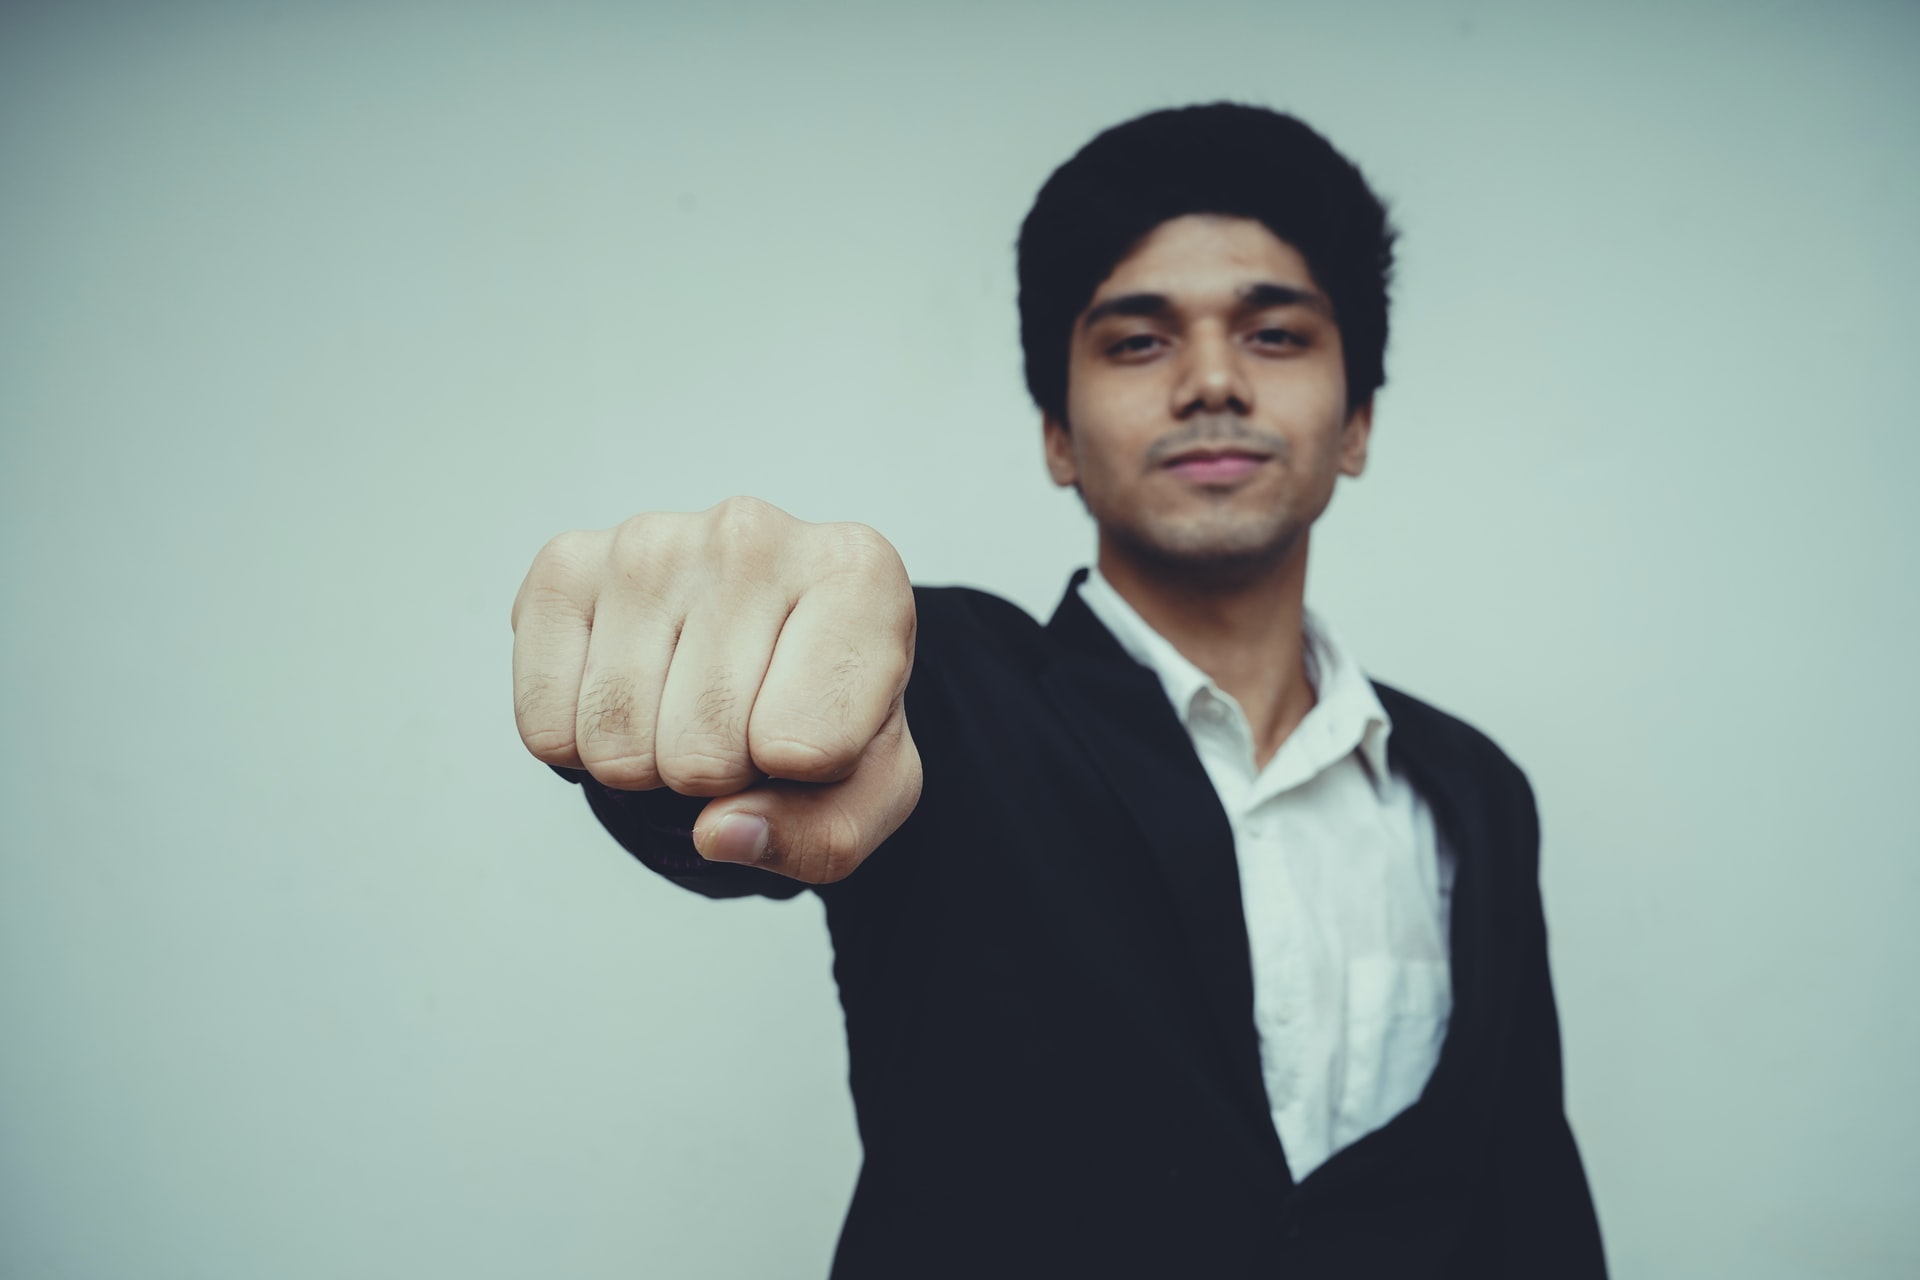 A man shows his fist to the camera.